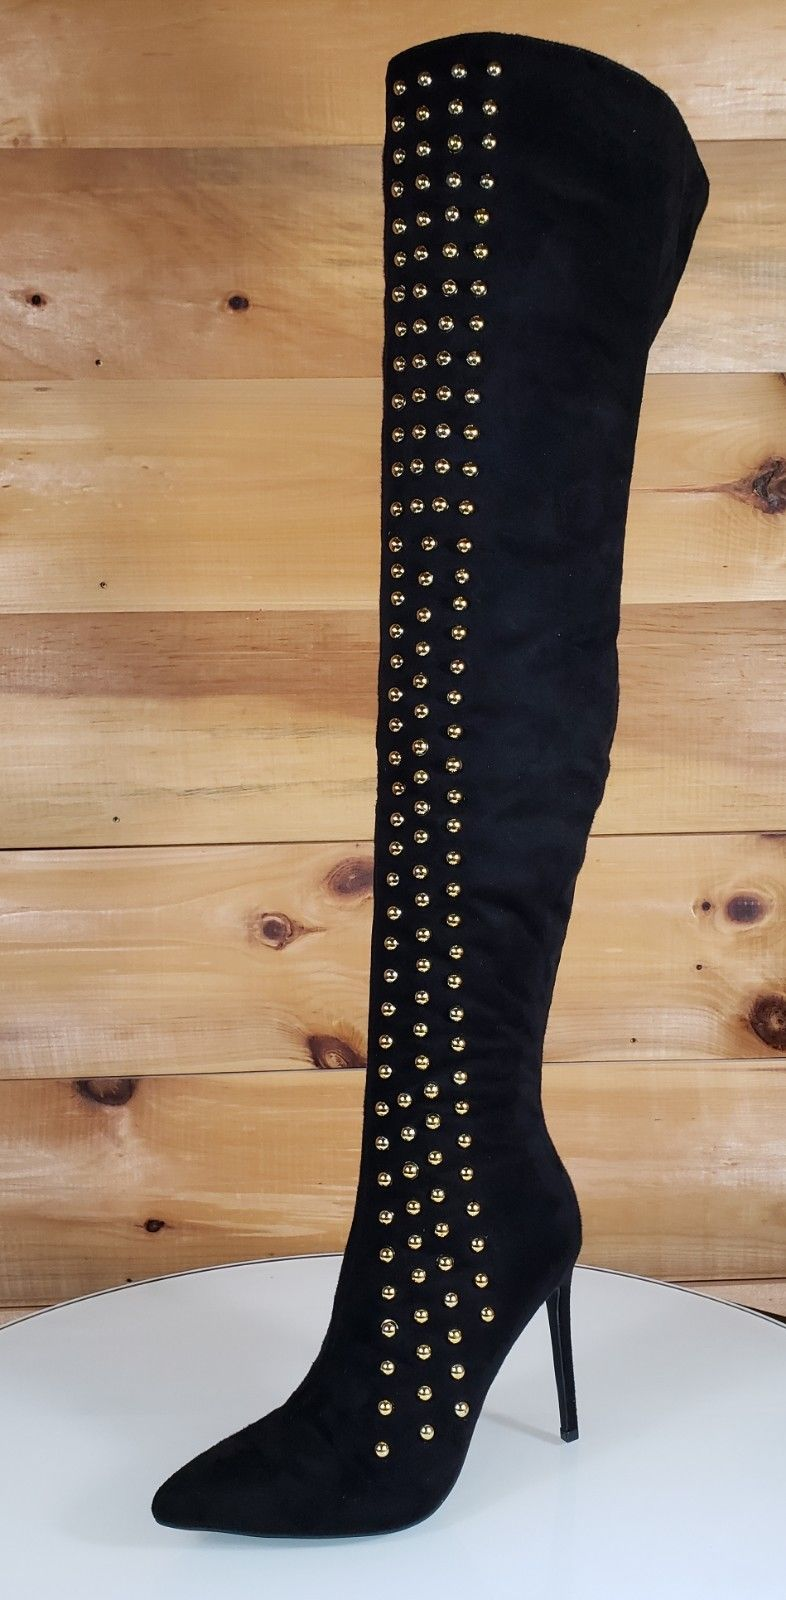 So Me May Black Pointy Toe High Heel OTK Above Knee Boots Gold Stud Stripe